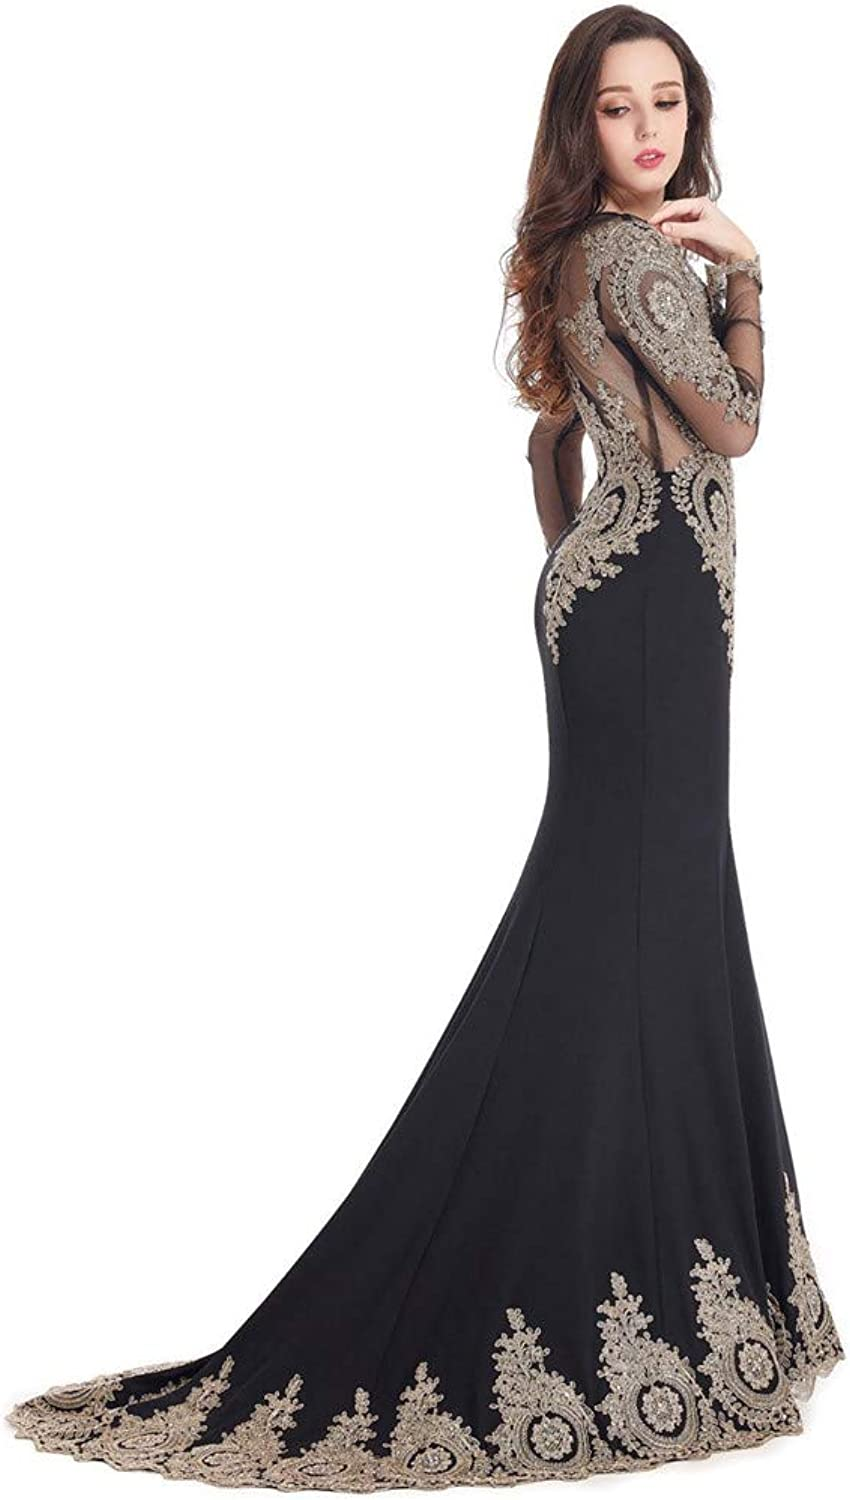 Women's Sexy Round Neck Long Sleeve Mesh Applique Sequin Fitted Bodycon Evening Floor Length Dress Bridesmaid Dress